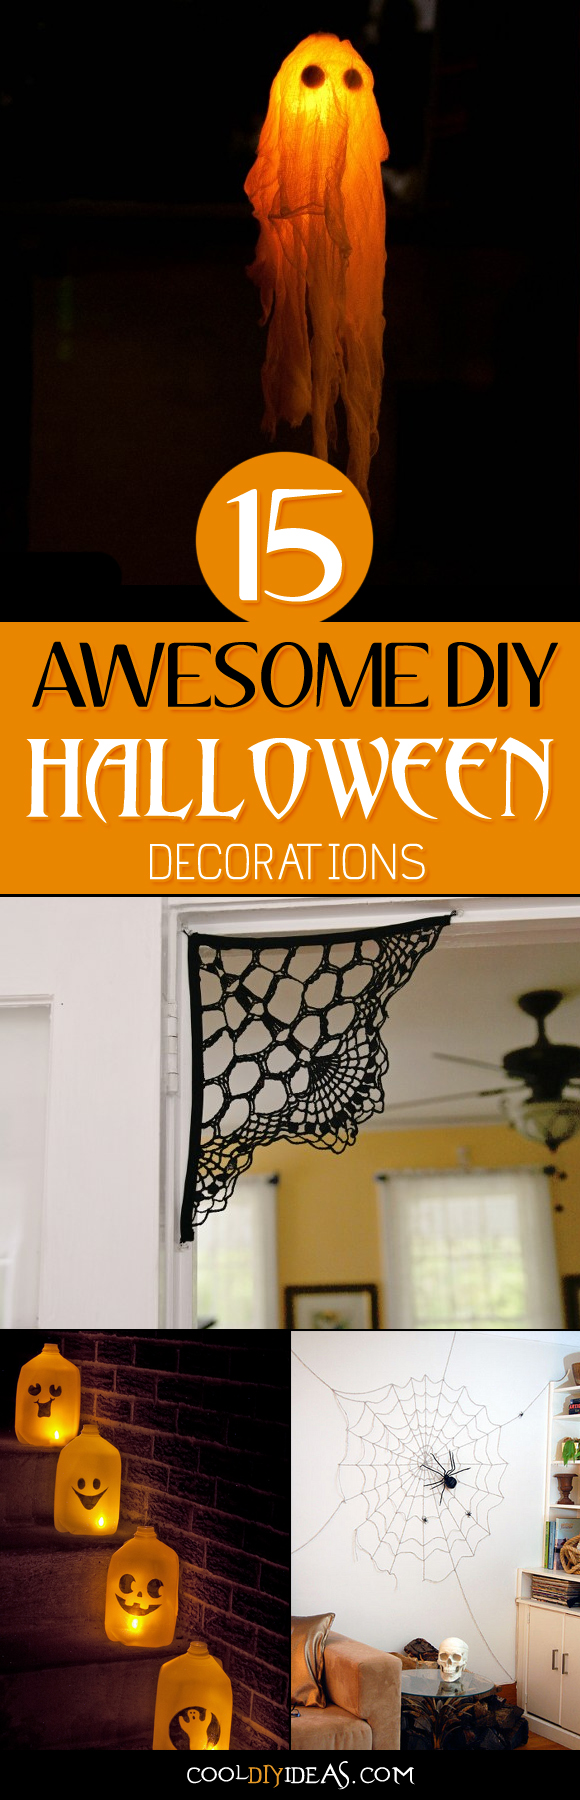 15 Awesome DIY Halloween Decorations That The Adults and Kids Will Love